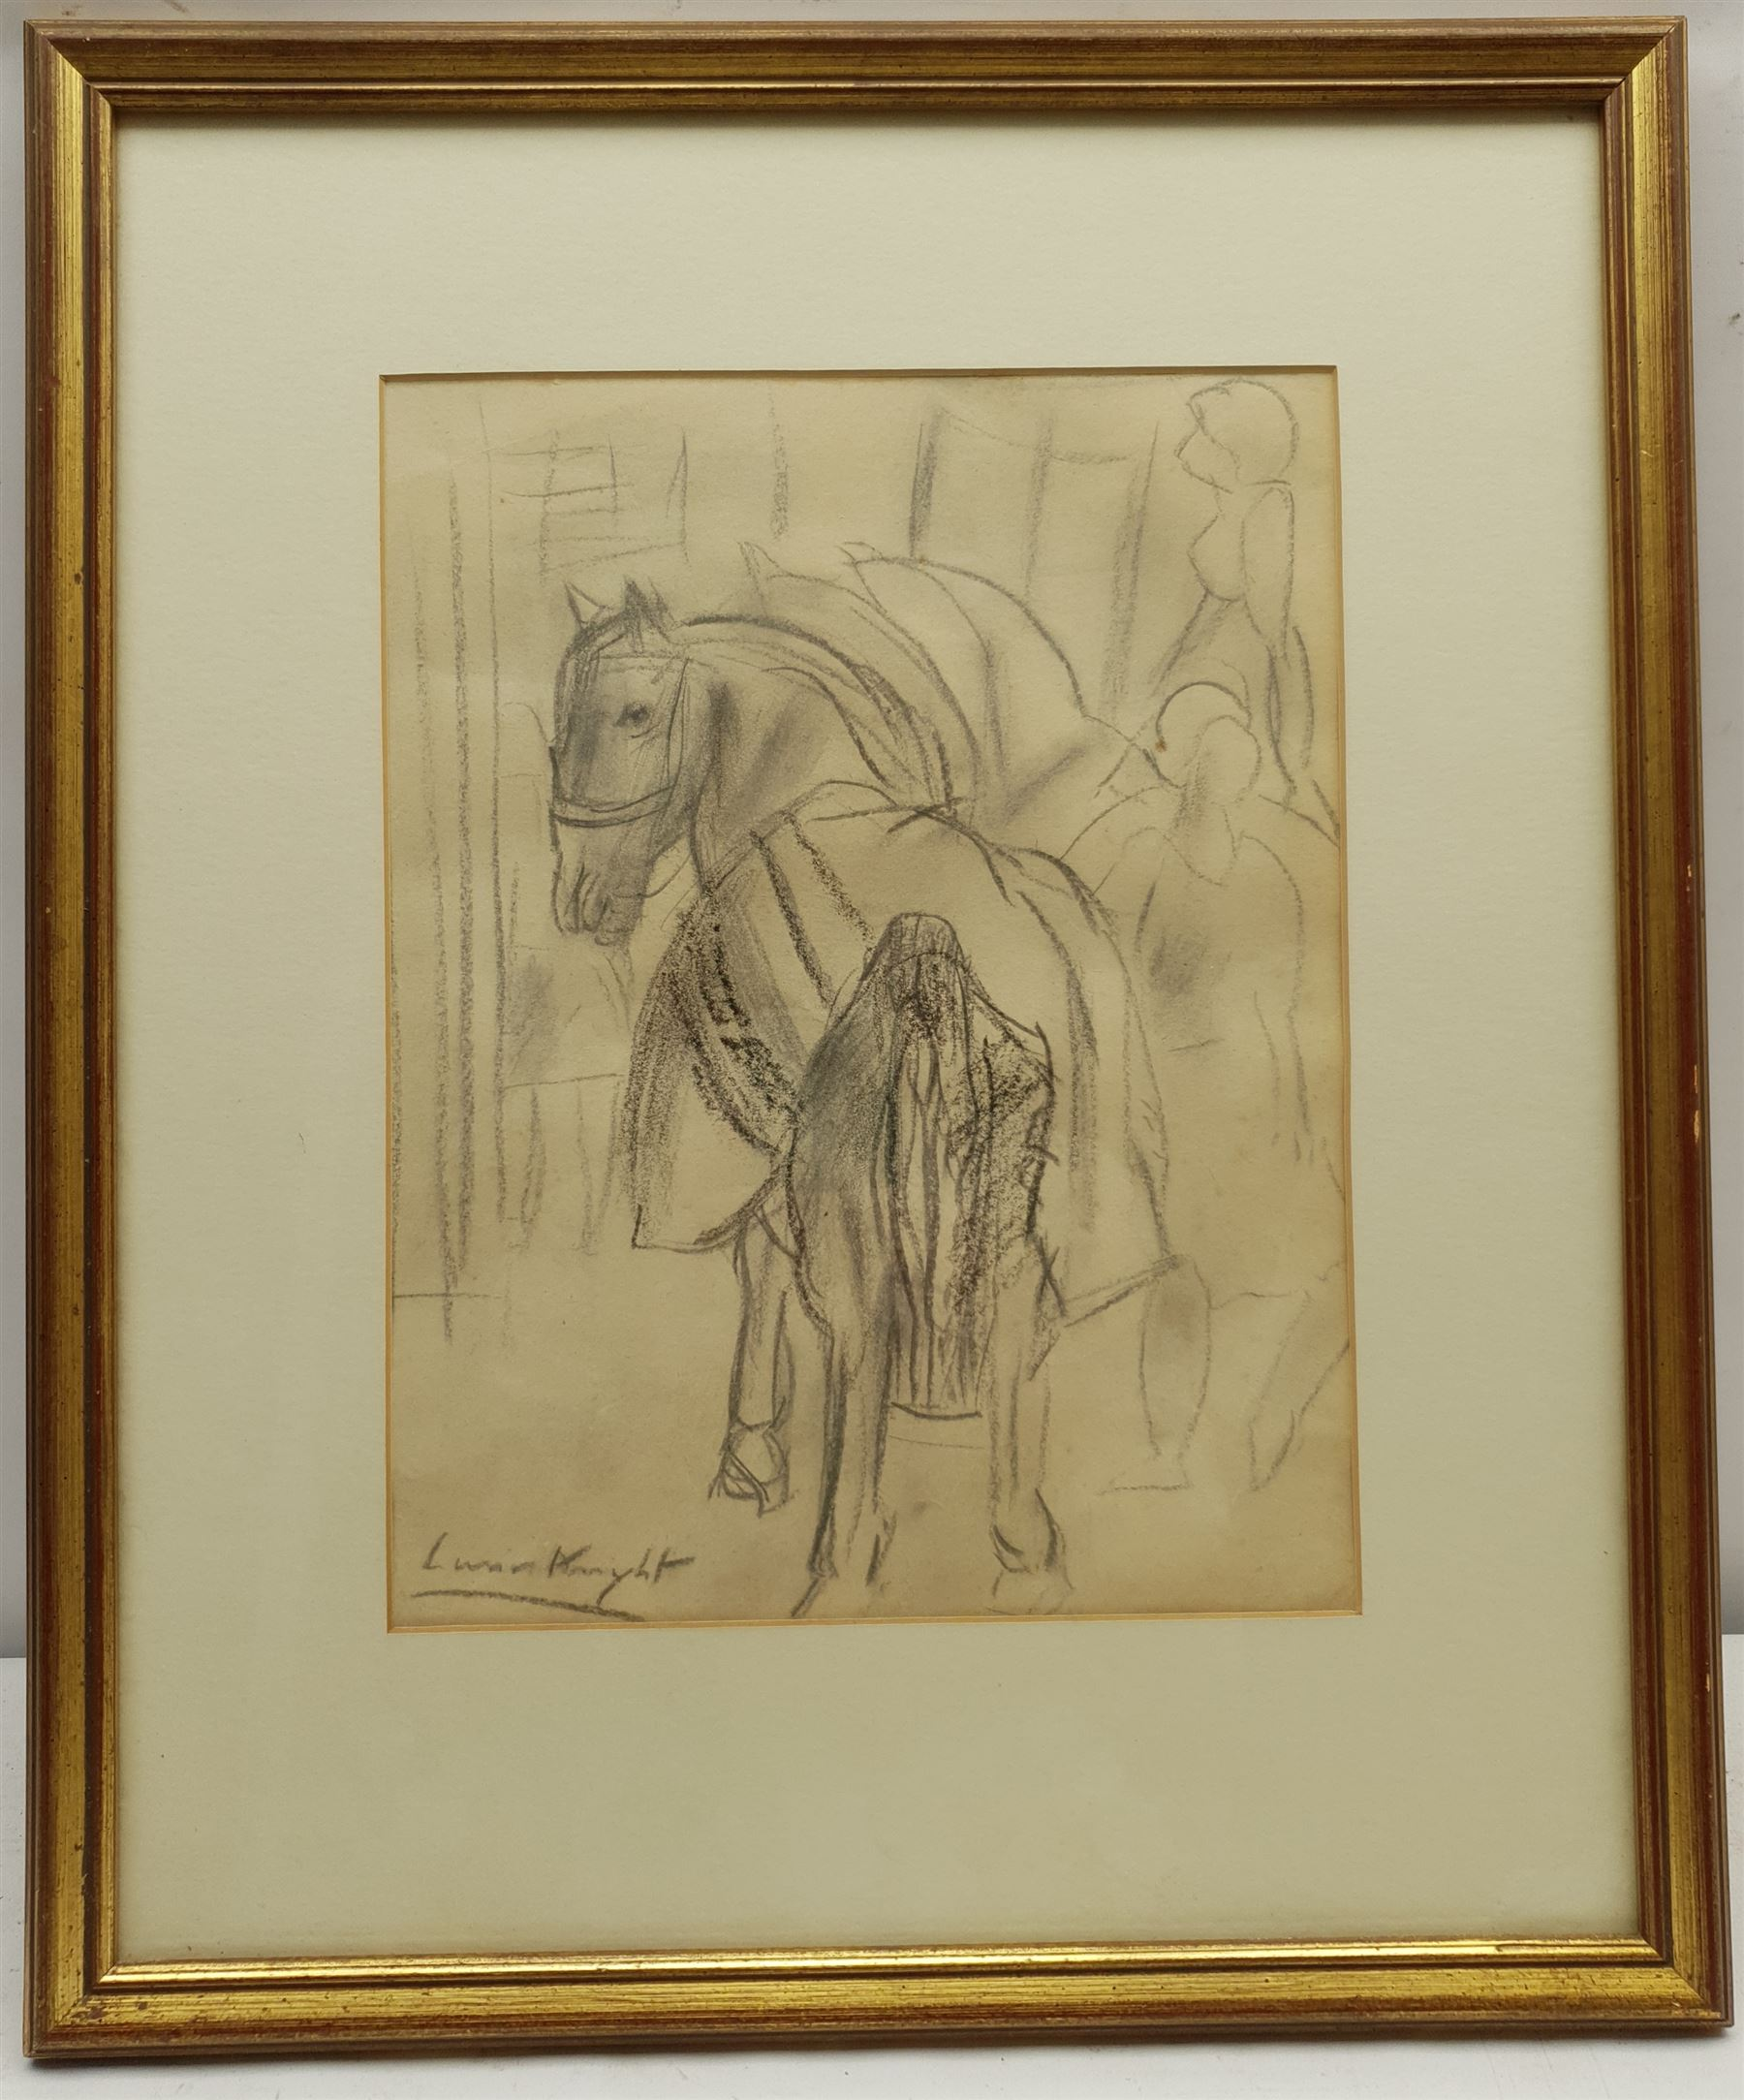 Dame Laura Knight RA (Staithes Group 1877-1970): Circus Horses - Image 2 of 4